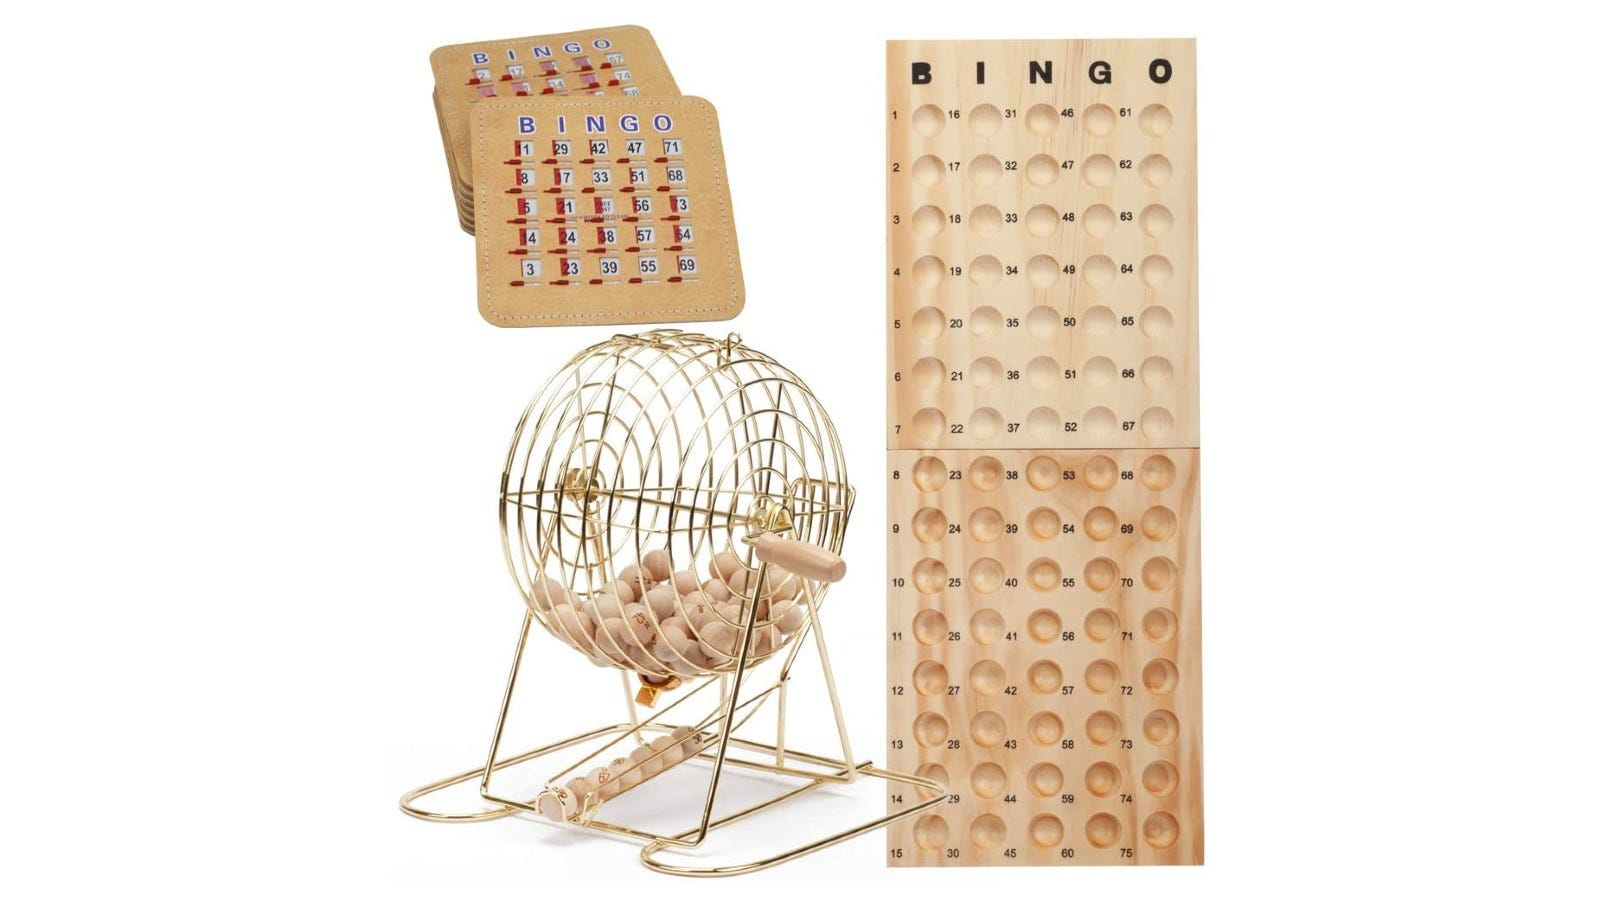 A traditional wooden bingo set with a golden cage and wooden boards